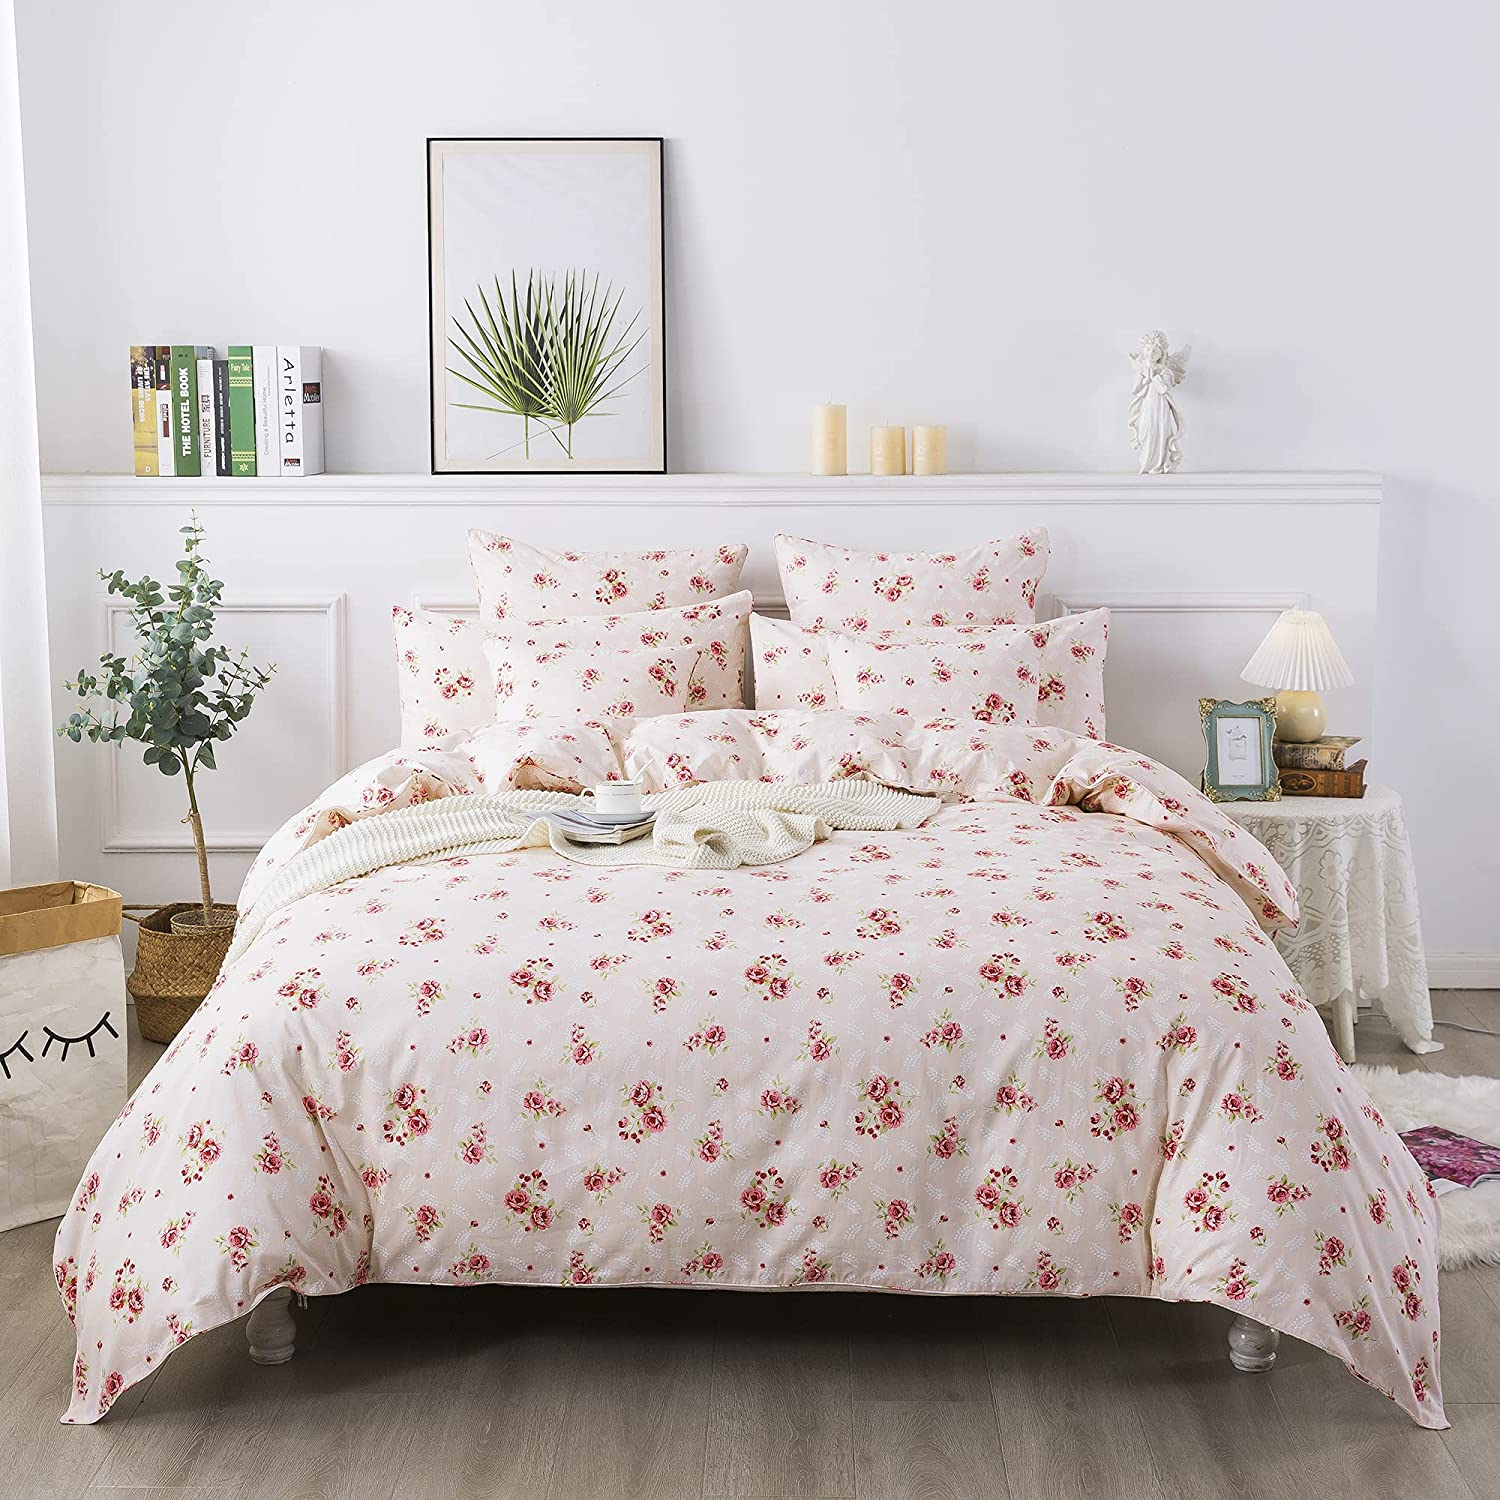 FADFAY Pink Rose Floral Duvet 35% OFF Cover Romantic Memphis Mall Flo King Shabby Set